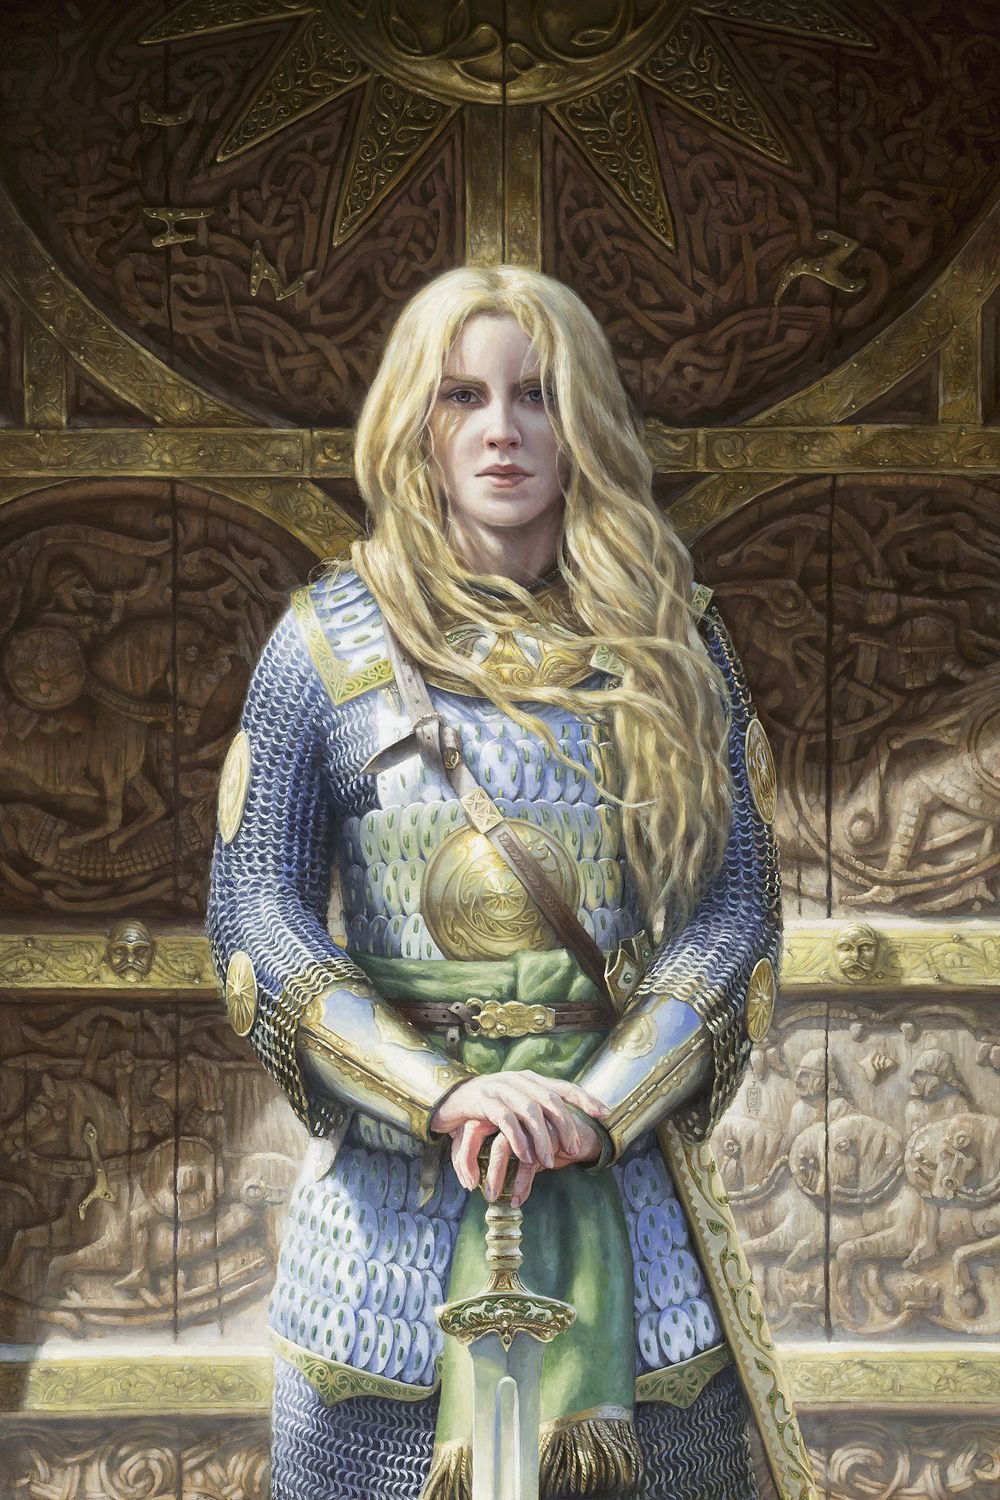 Eowyn before the Doors of Meduseld Artwork by Matthew Stewart